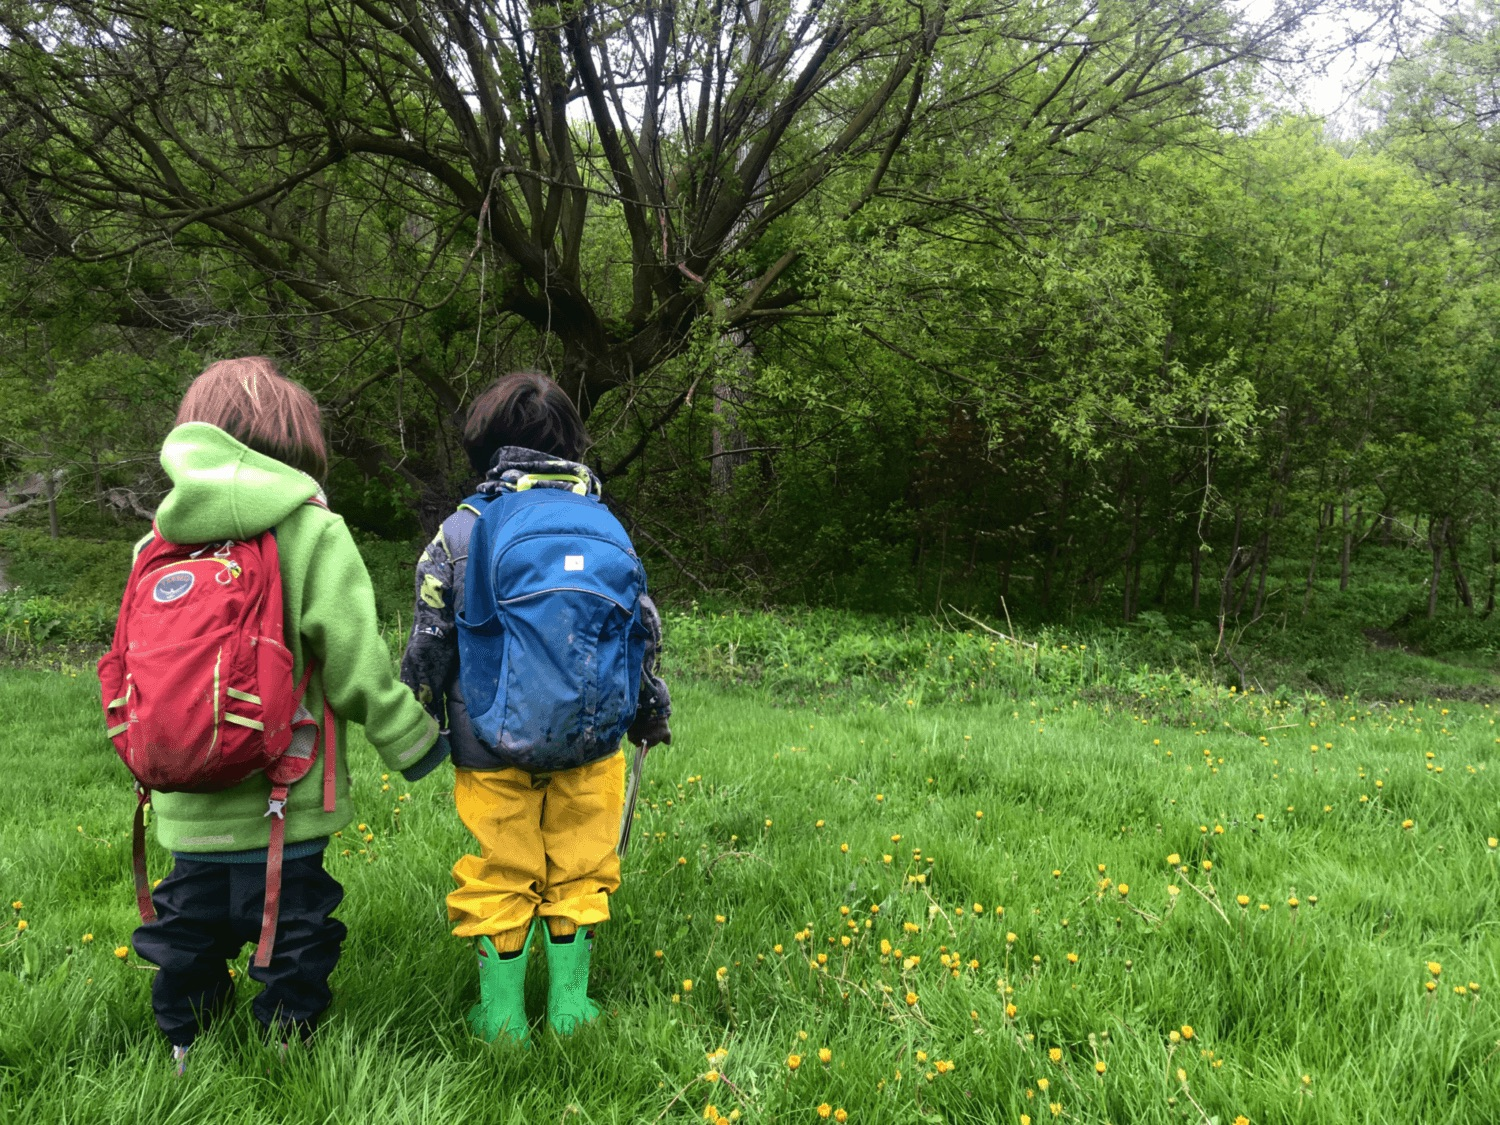 Learn more about our Outdoor School programs